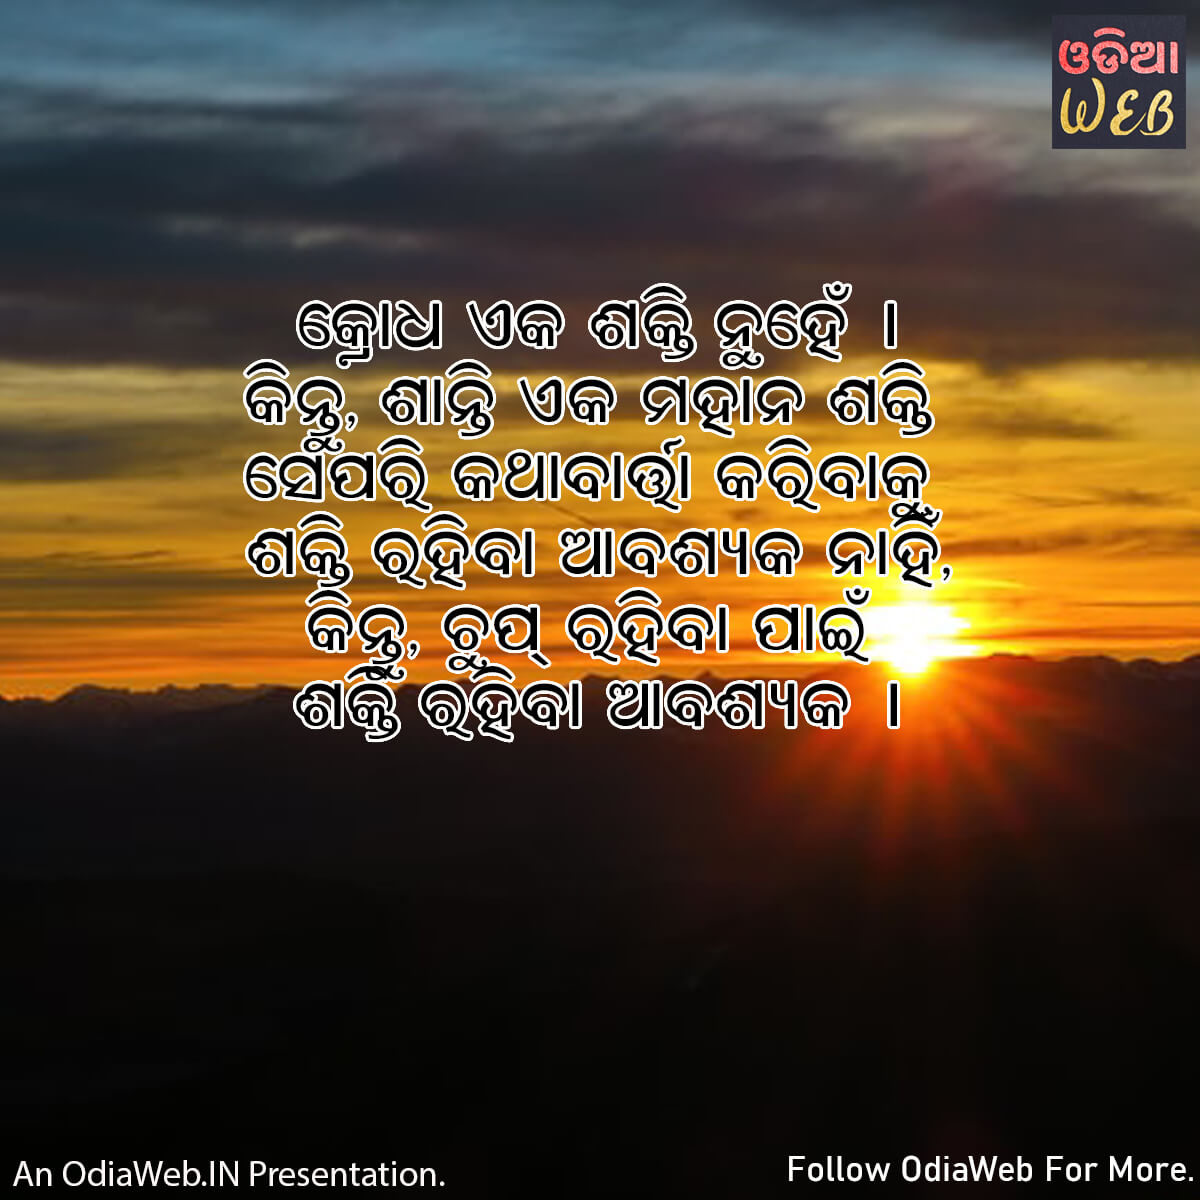 Odia Anger Quotes